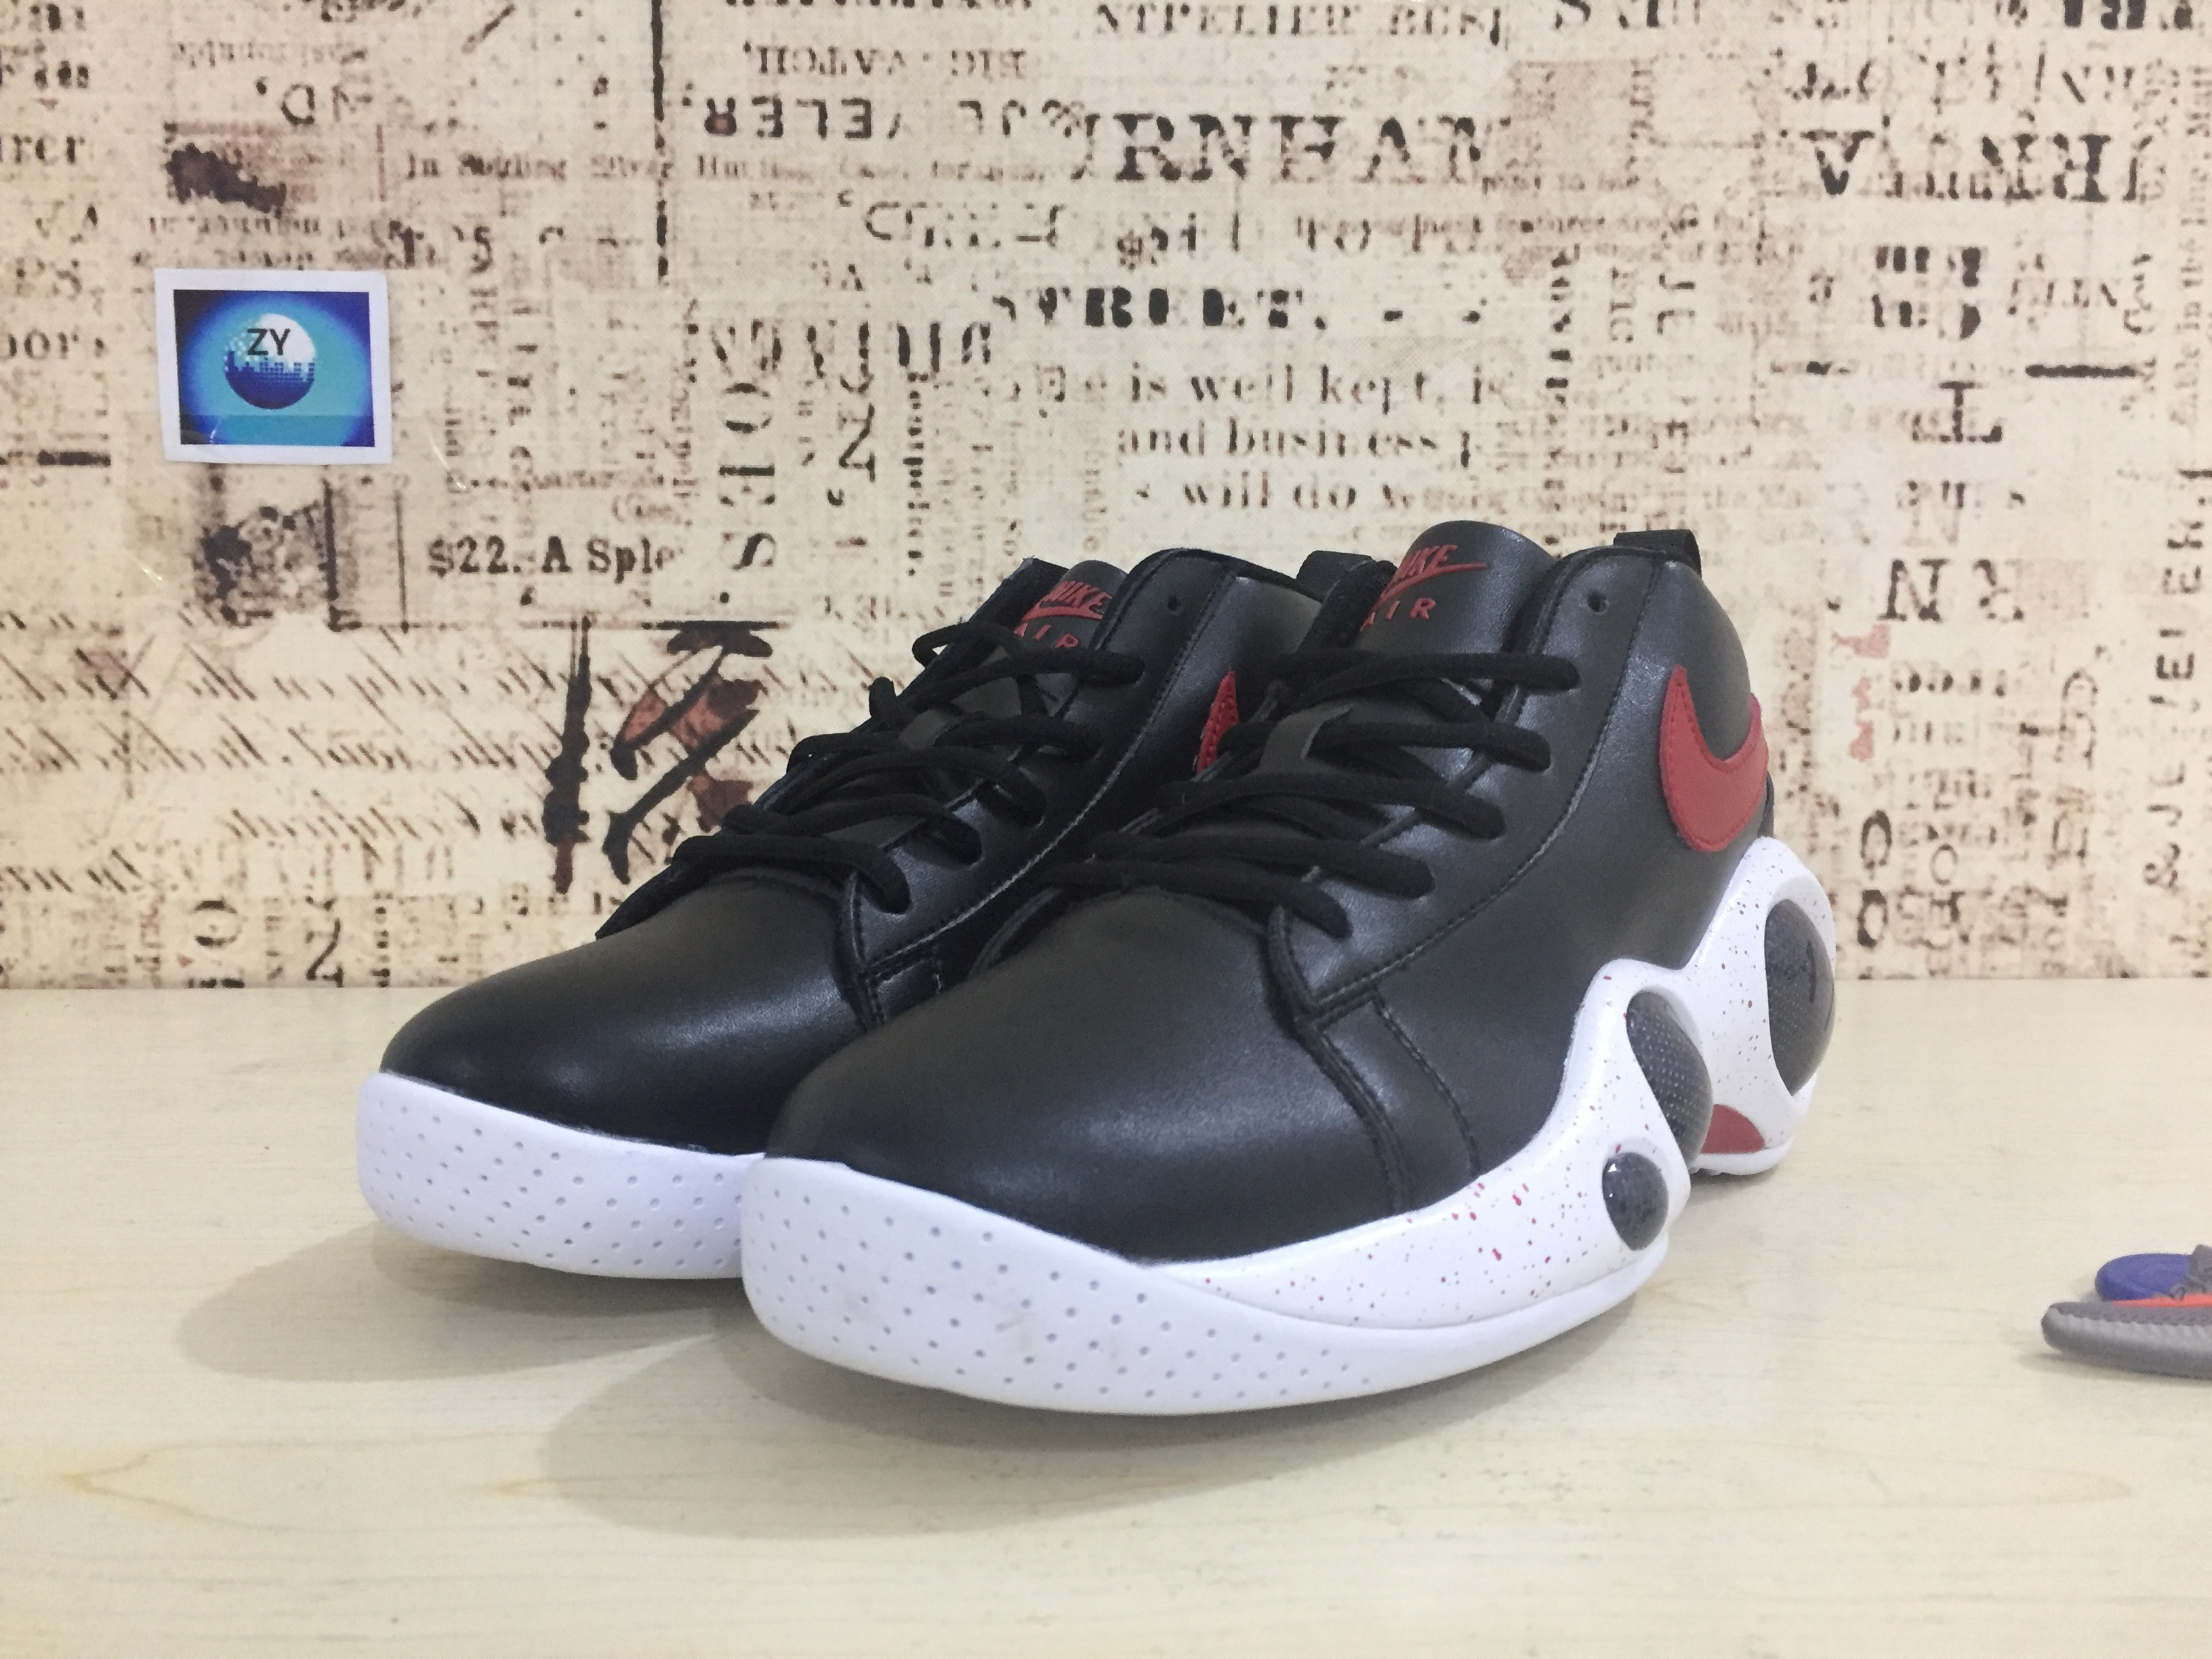 Nike Zoom Bonafide Black Red Shoes